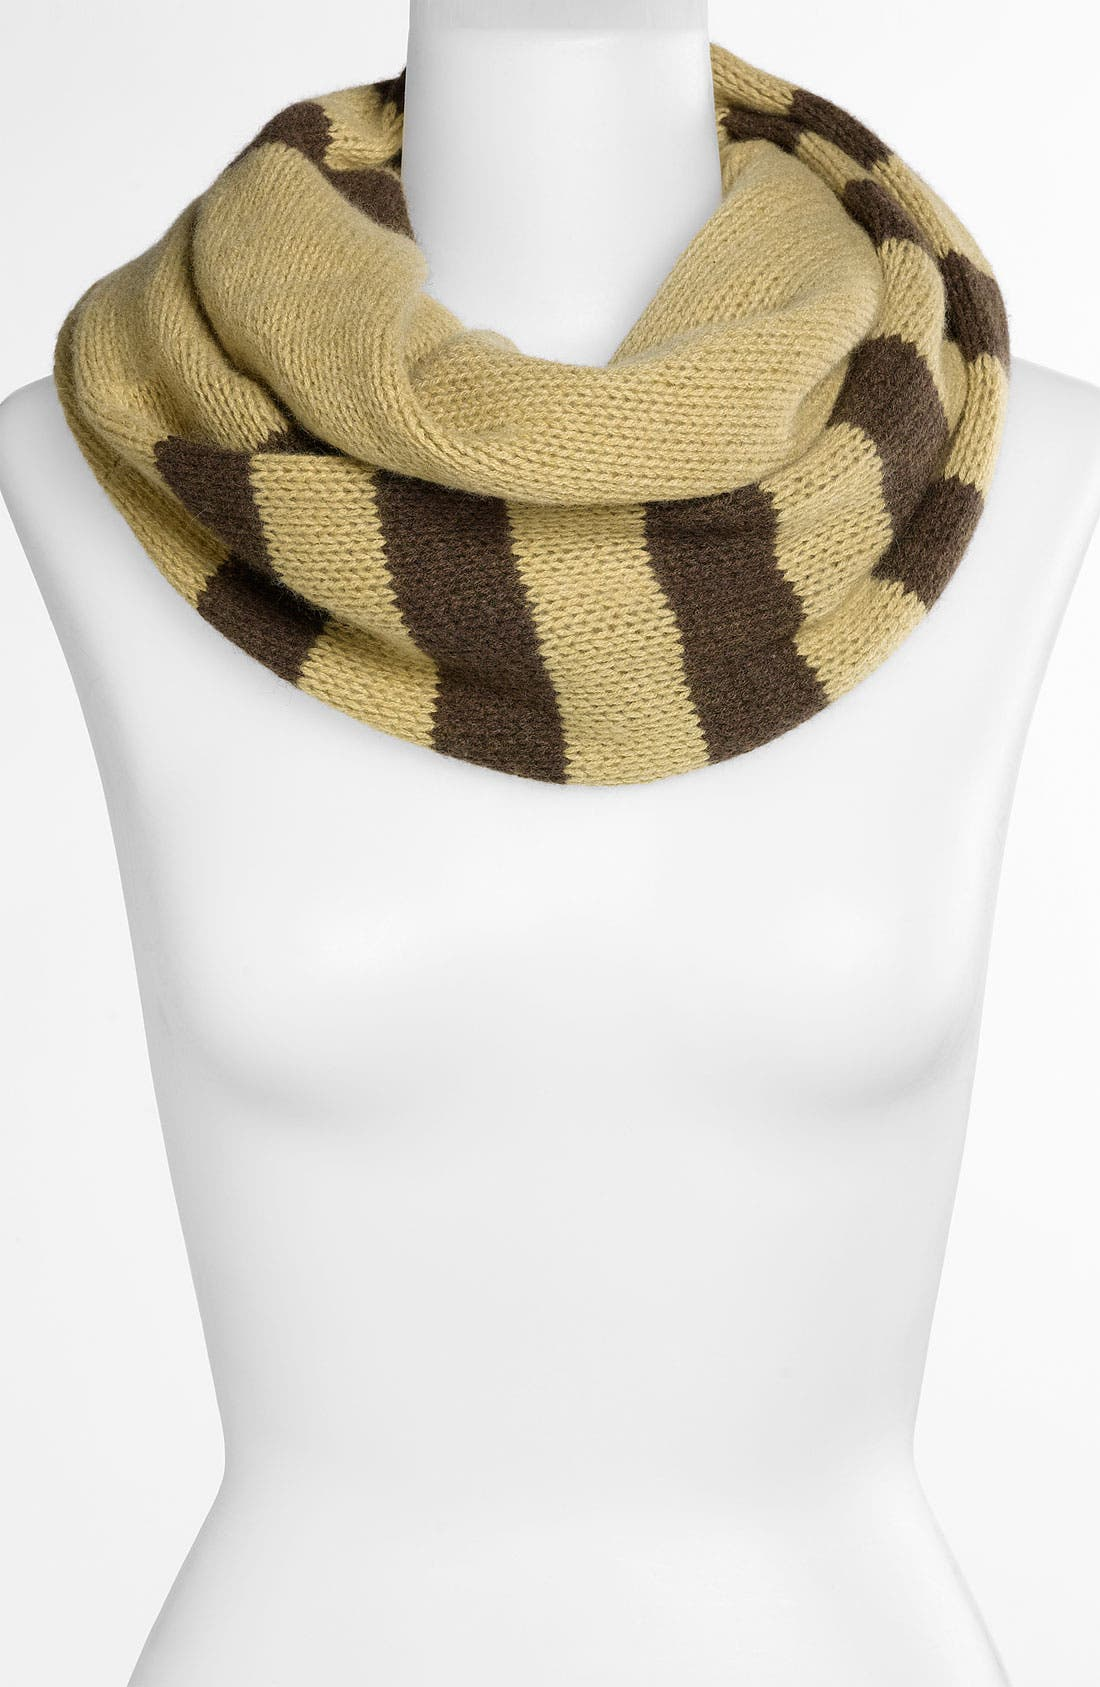 Alternate Image 1 Selected - Nordstrom Rugby Stripe Cashmere Infinity Scarf